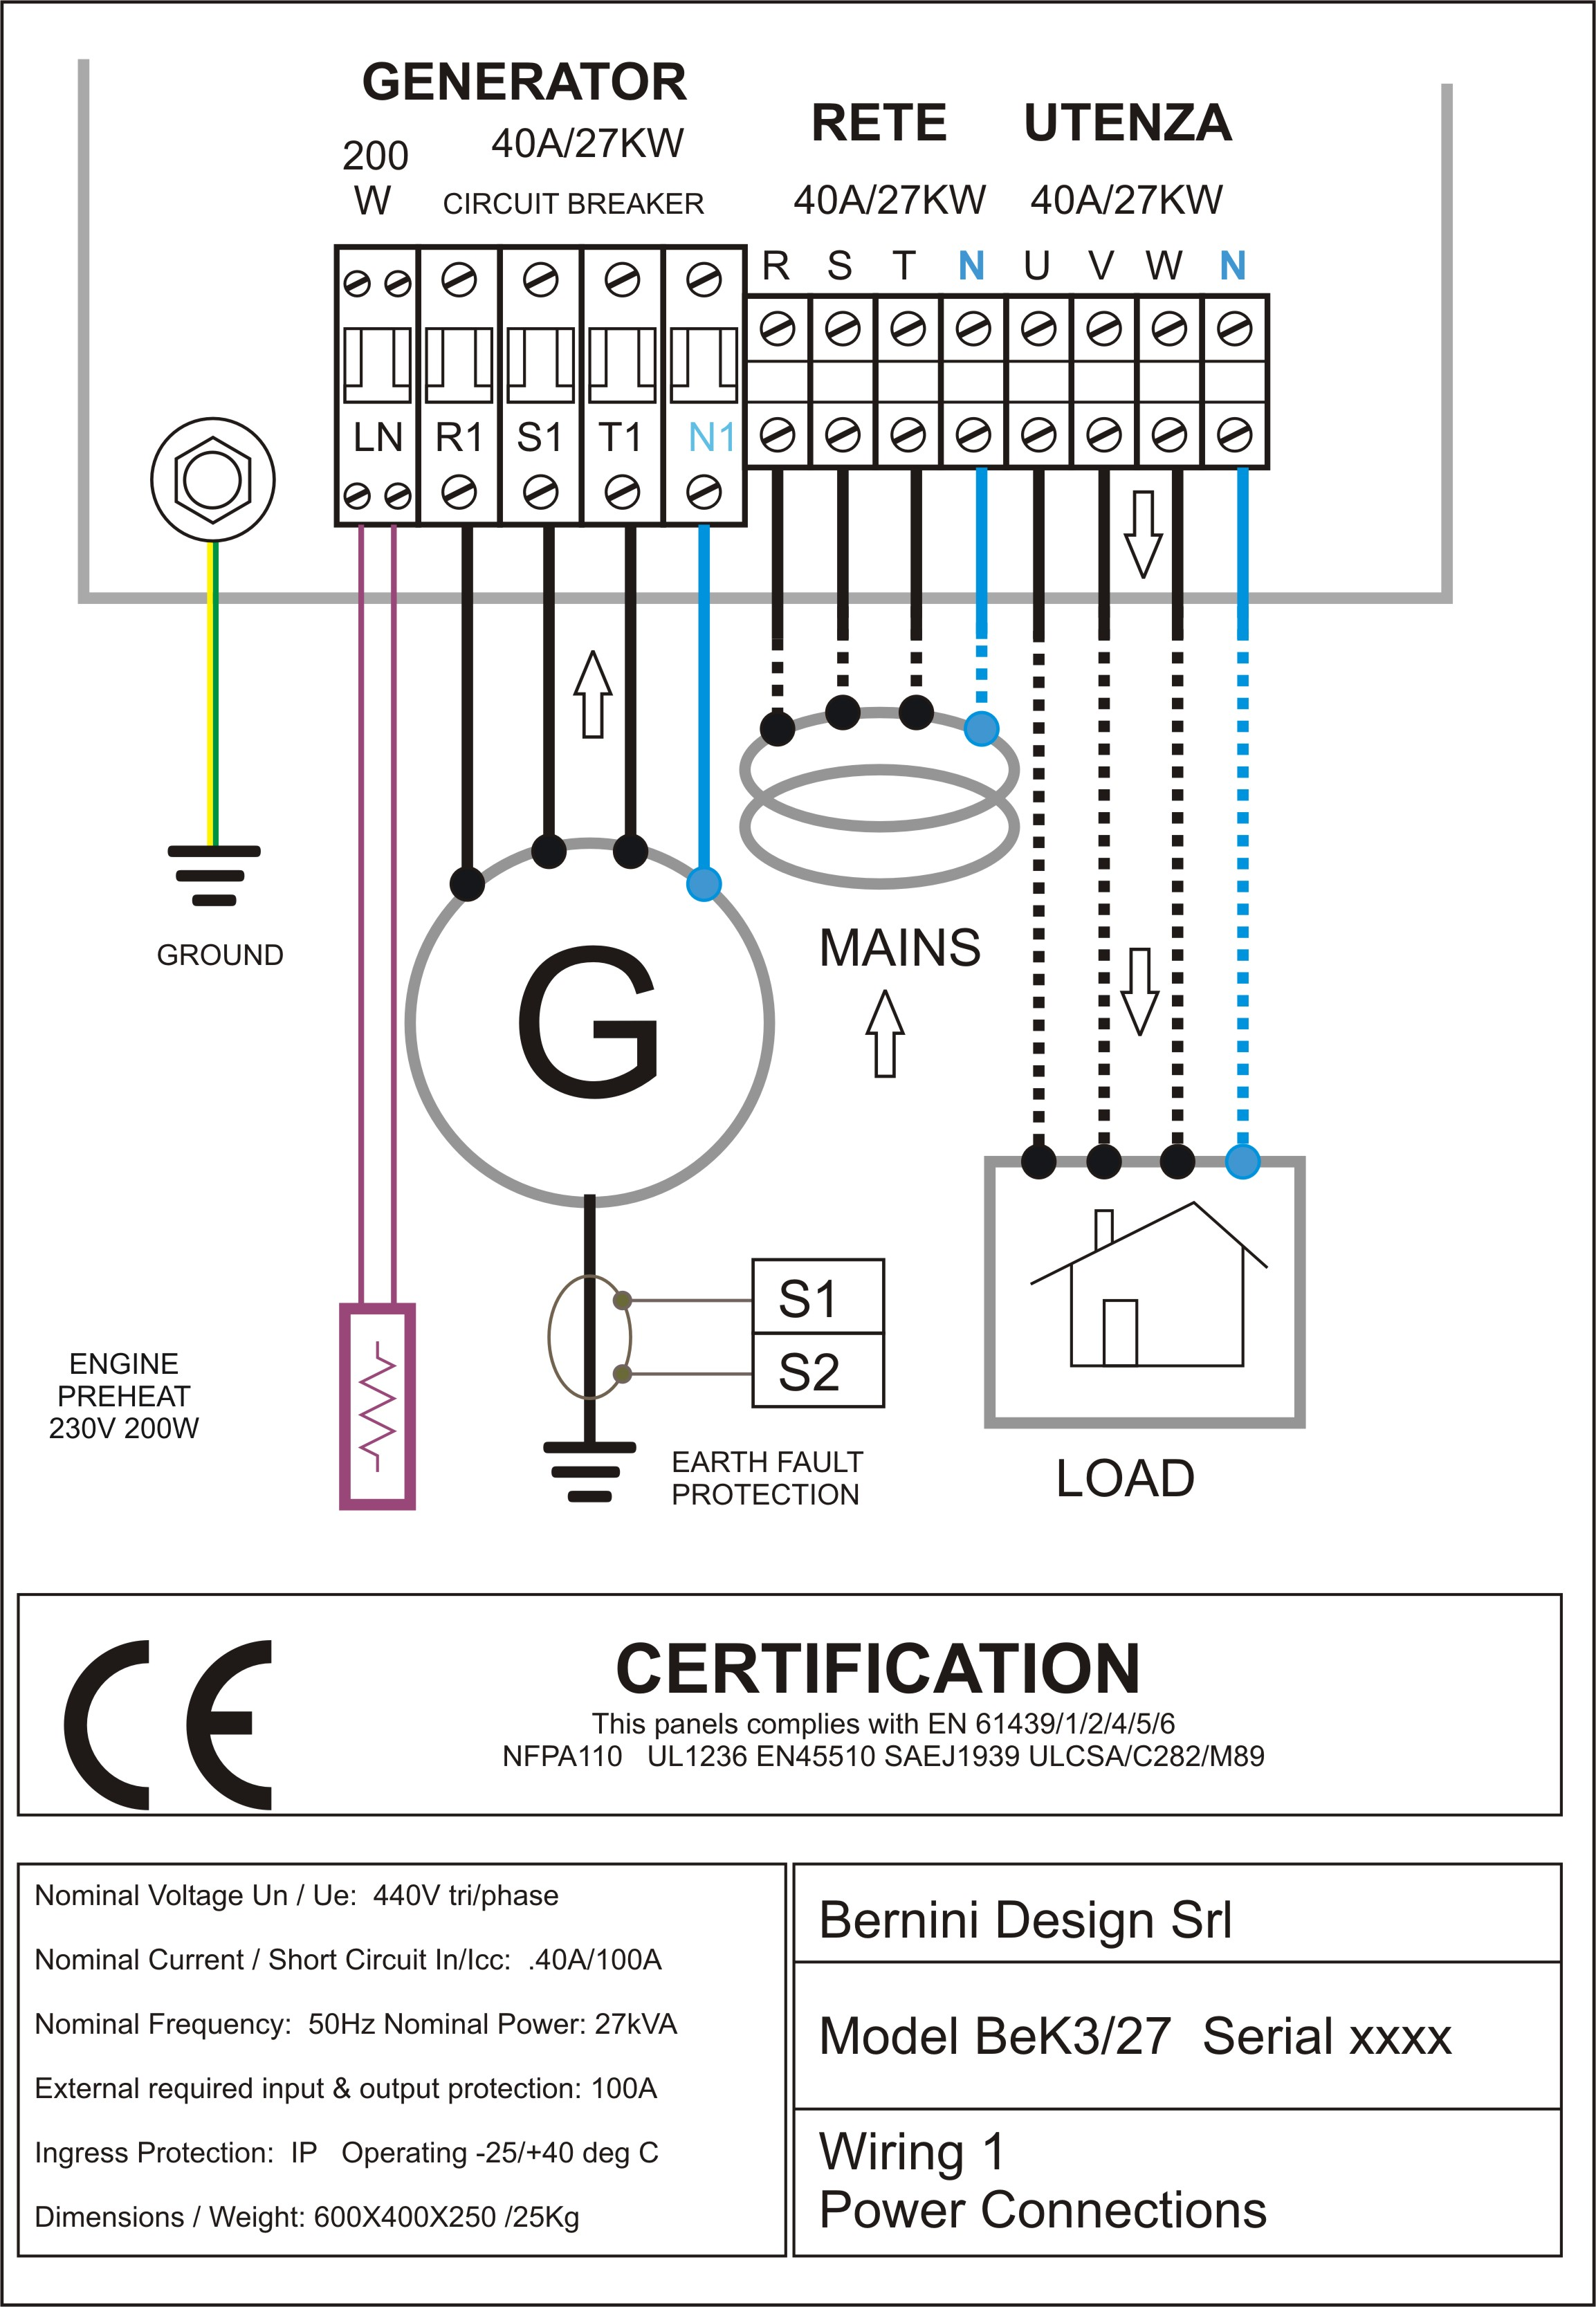 Orenco Control Panel Wiring Diagram | Wiring Diagram on troubleshooting diagram, installation diagram, solar panels diagram, telecommunications diagram, panel wiring icon, plc diagram, electricians diagram, drilling diagram, instrumentation diagram, grounding diagram, assembly diagram, rslogix diagram,